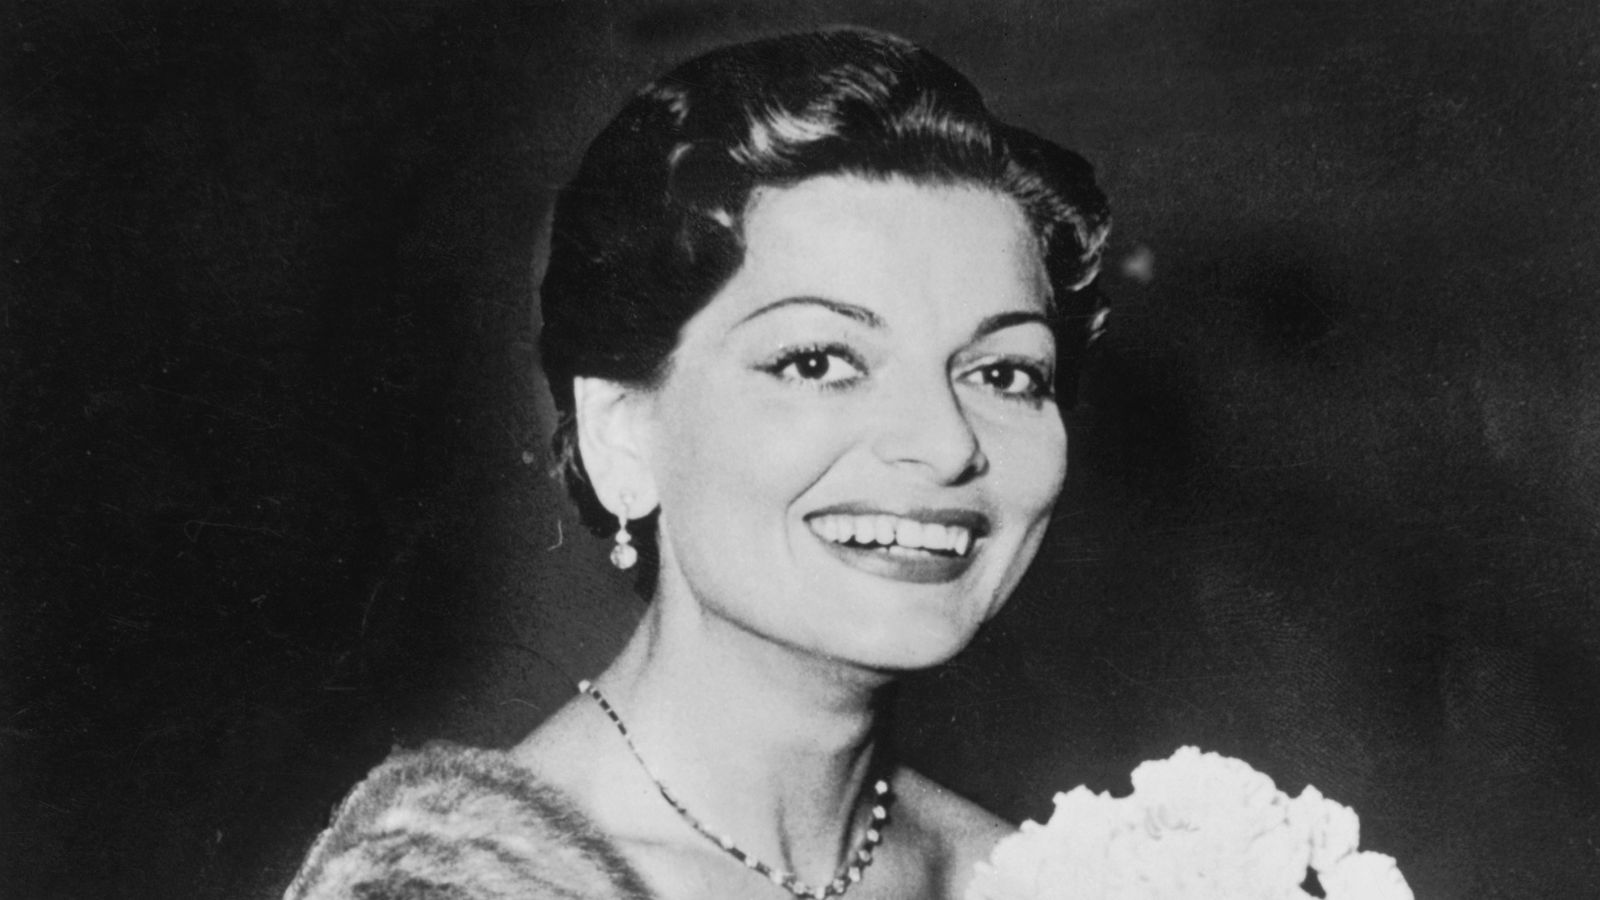 Eurovision's first ever winner Lys Assia dies